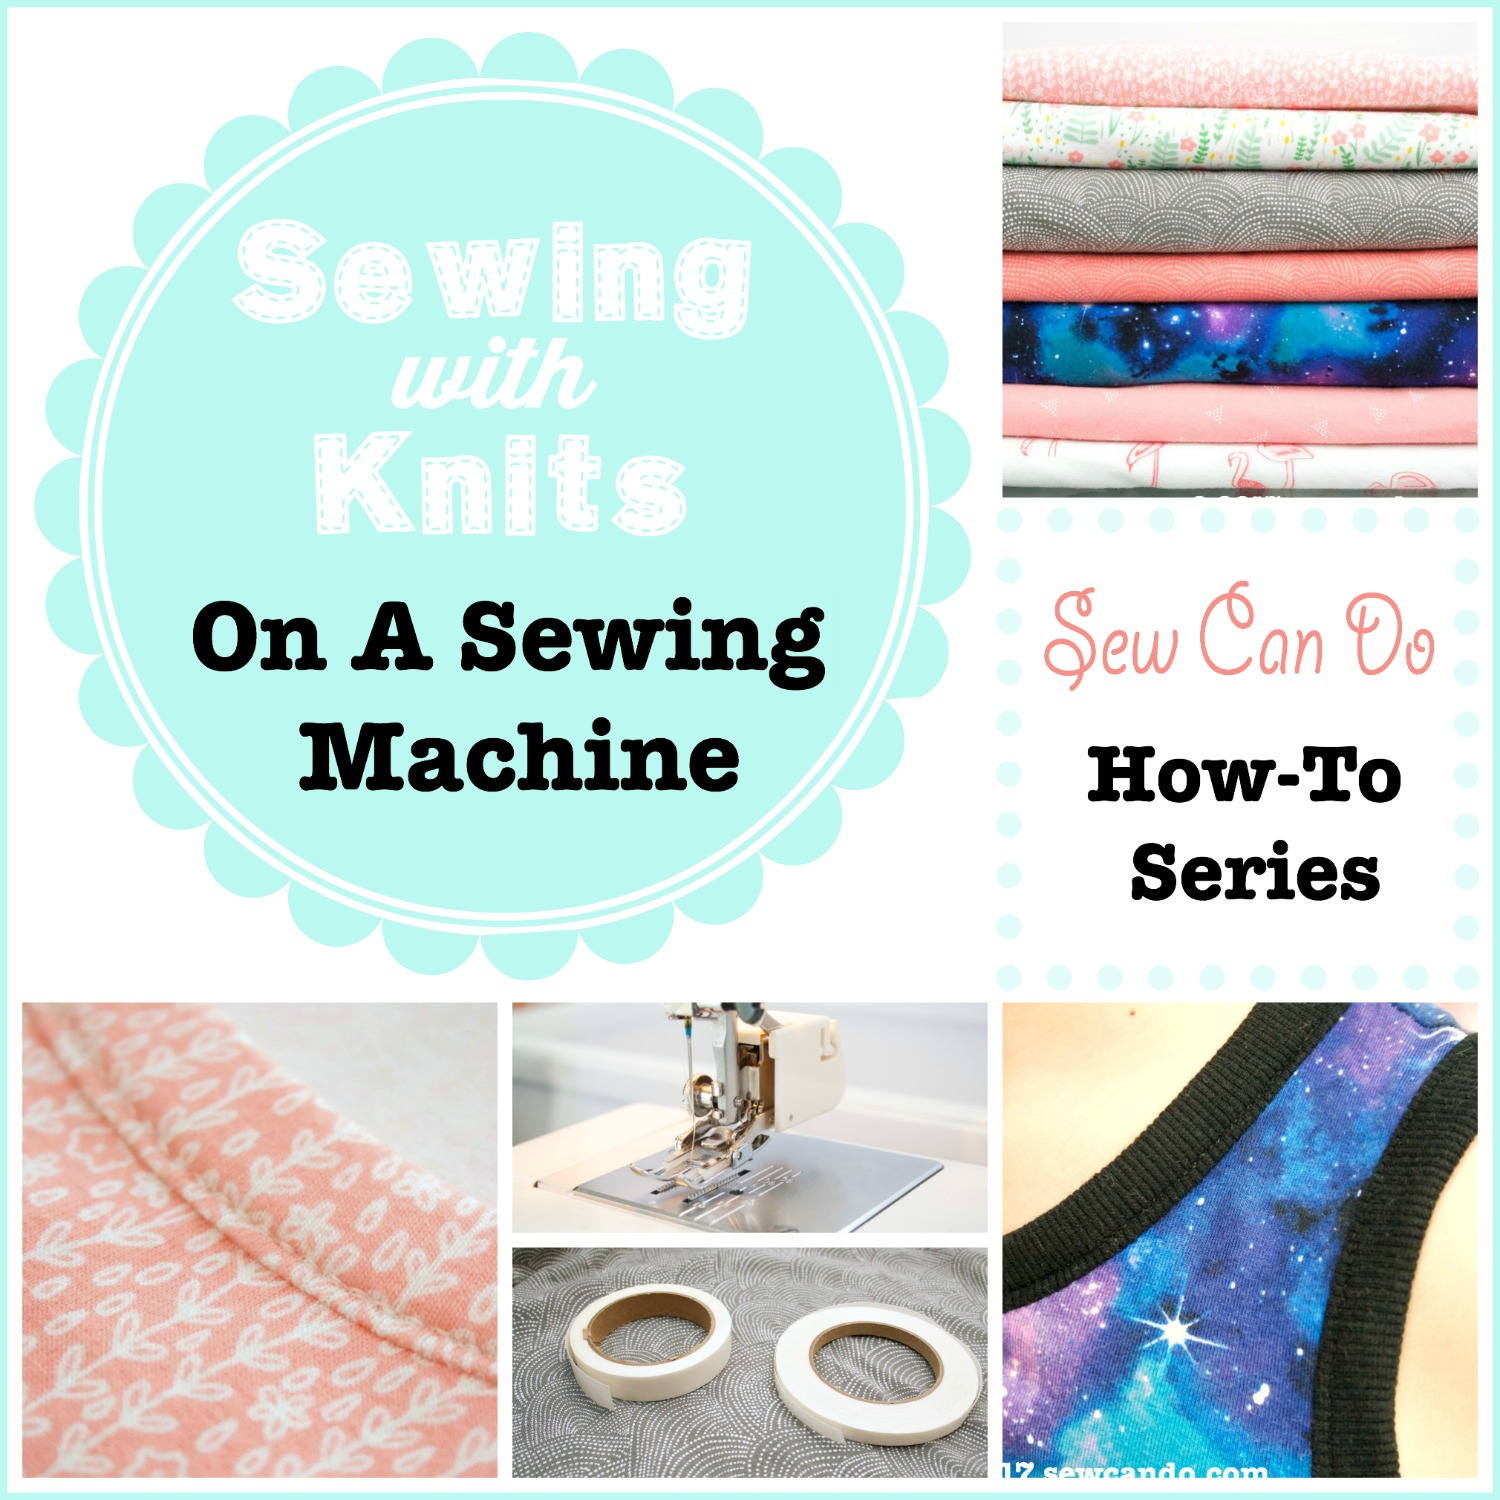 Knitting Yarn Bdo : Sew can do craftastic monday link party